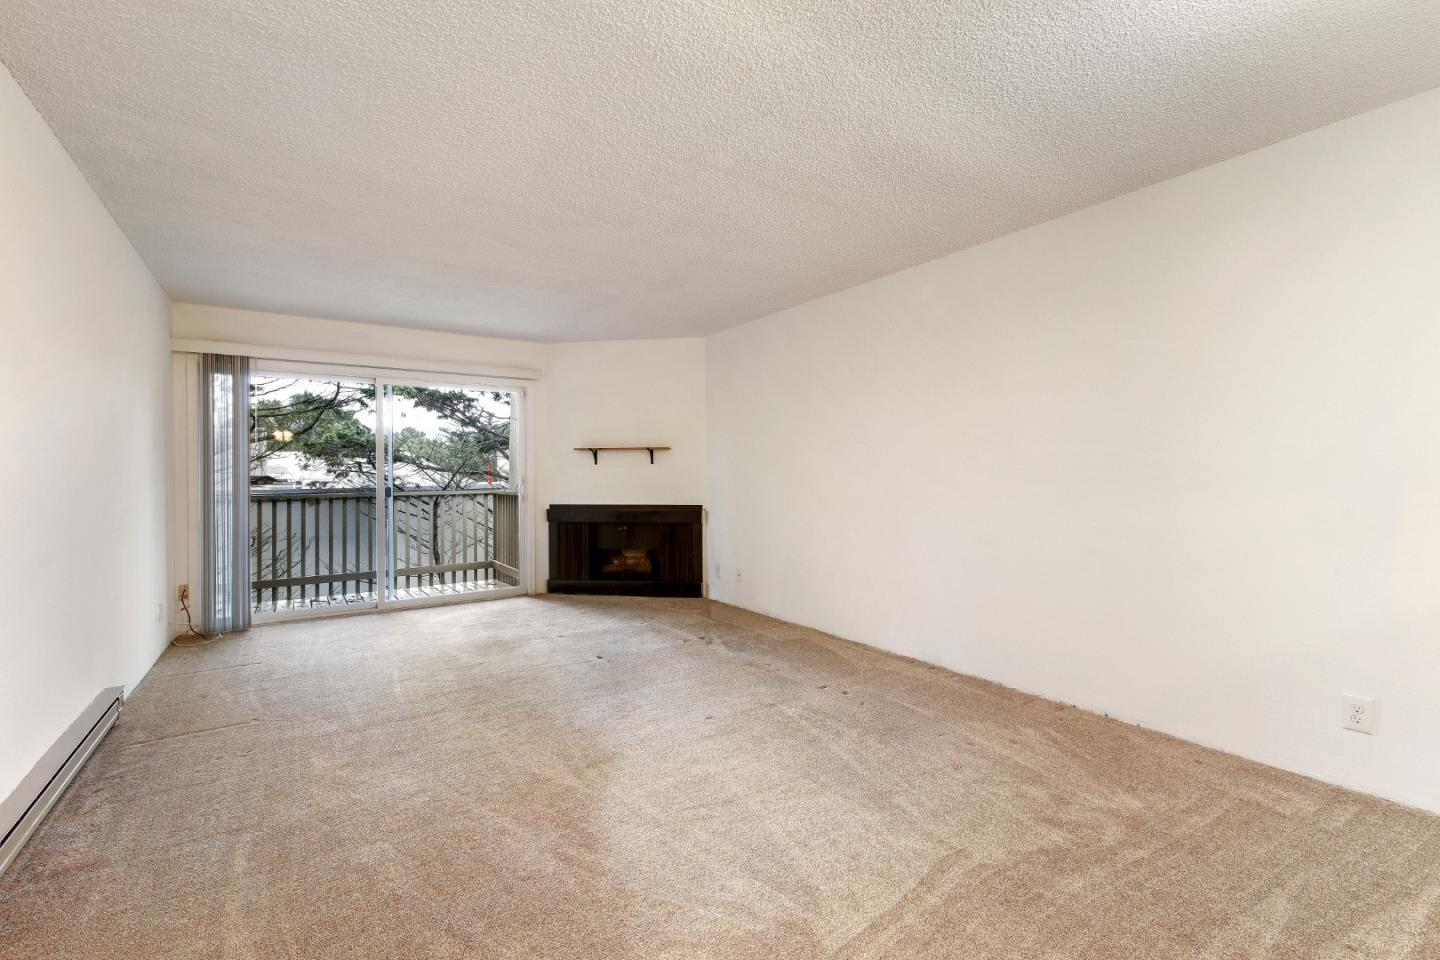 Image for 359 Half Moon Lane 305, <br>Daly City 94015